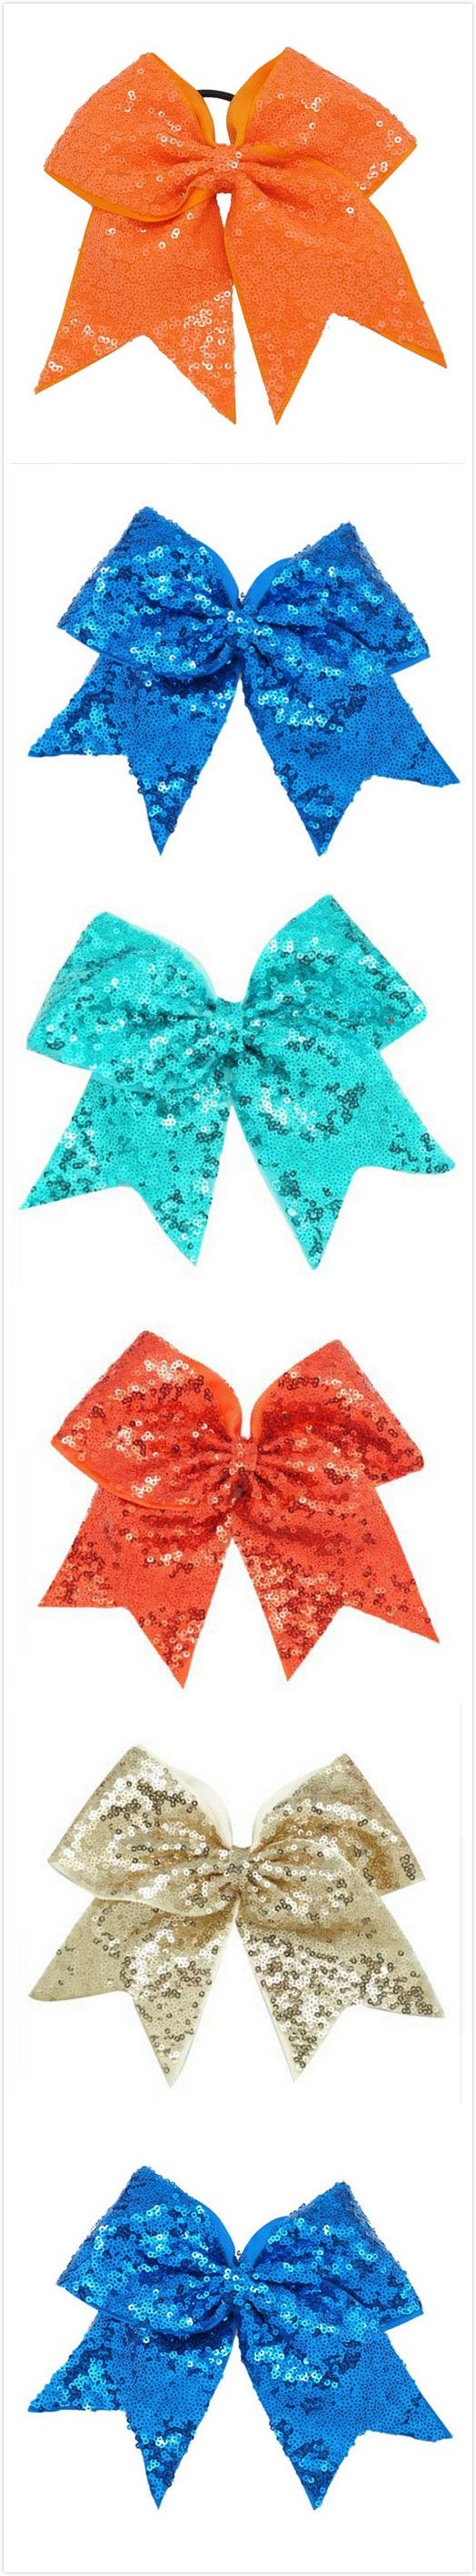 Only $1.6 cheer bow storage for girl.8 inch big cheer bow with elastic.sparkly cheer bow,cheer bow cheerleading, cheer bow competition.